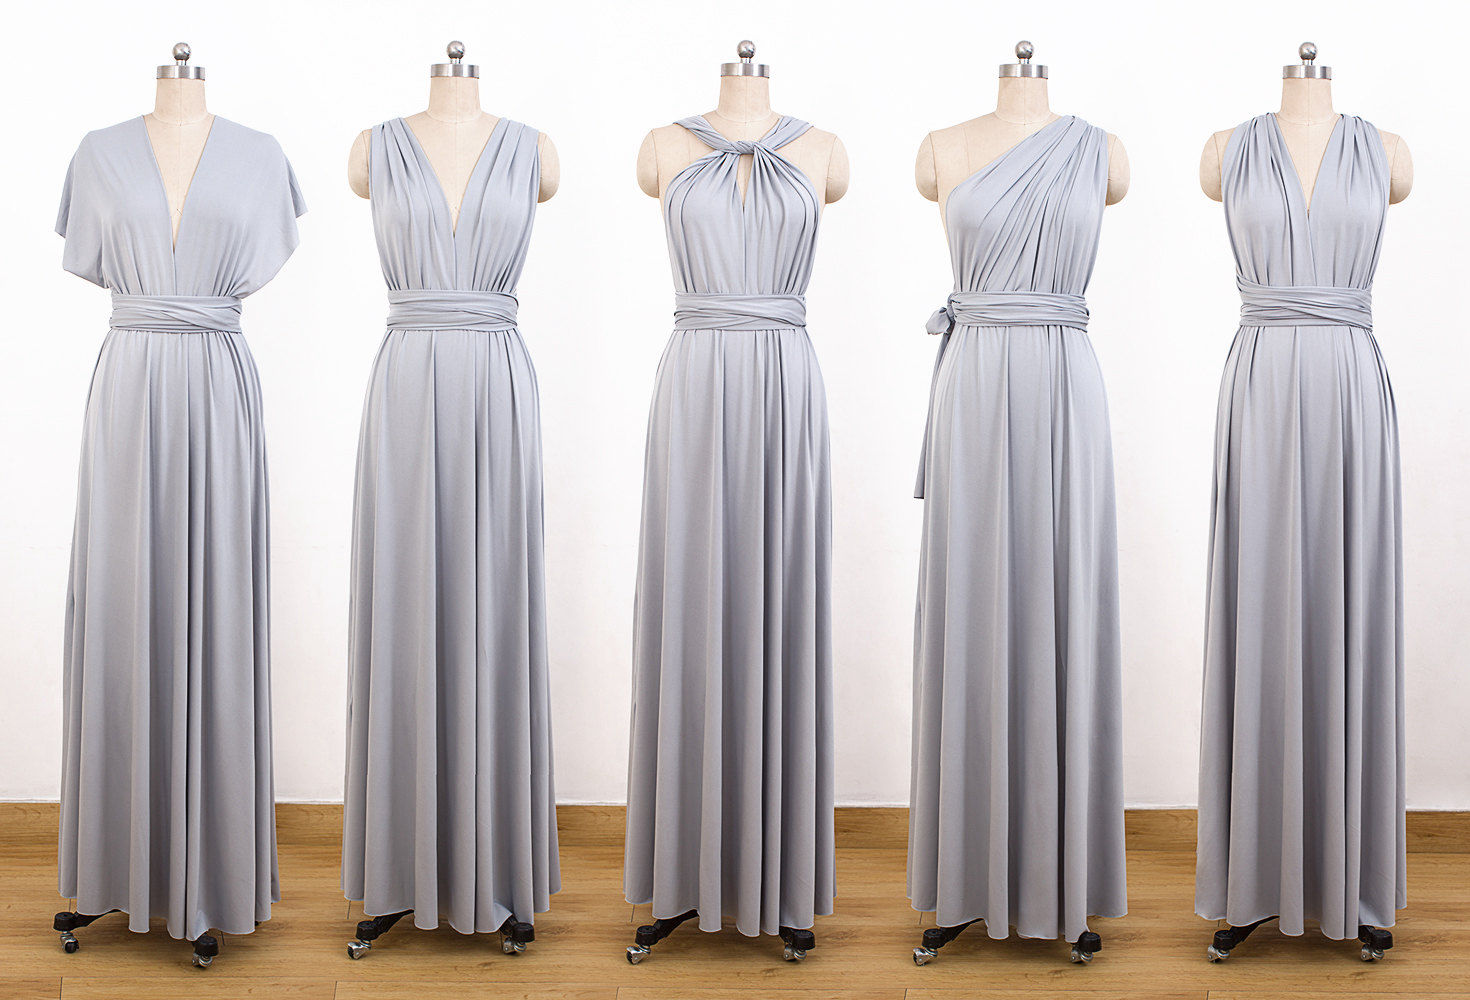 Of 6 cocktail bridesmaid convertible dress dresses long set of 6 cocktail bridesmaid convertible dress dresses long bridesmaid dress convertible dress infinity wrap dress ombrellifo Choice Image